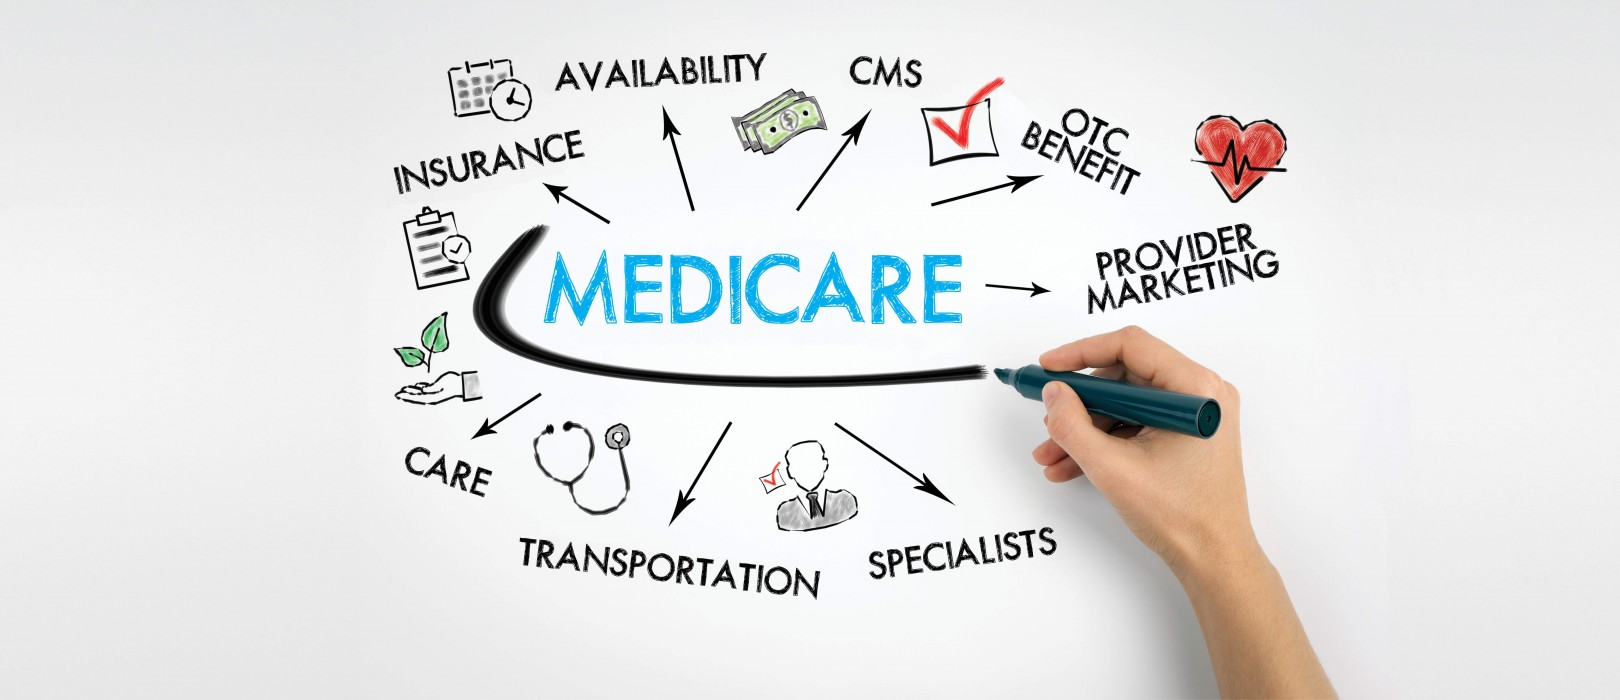 2019 Medicare AEP Campaigns: Member Experience, New Benefits | DMW Direct